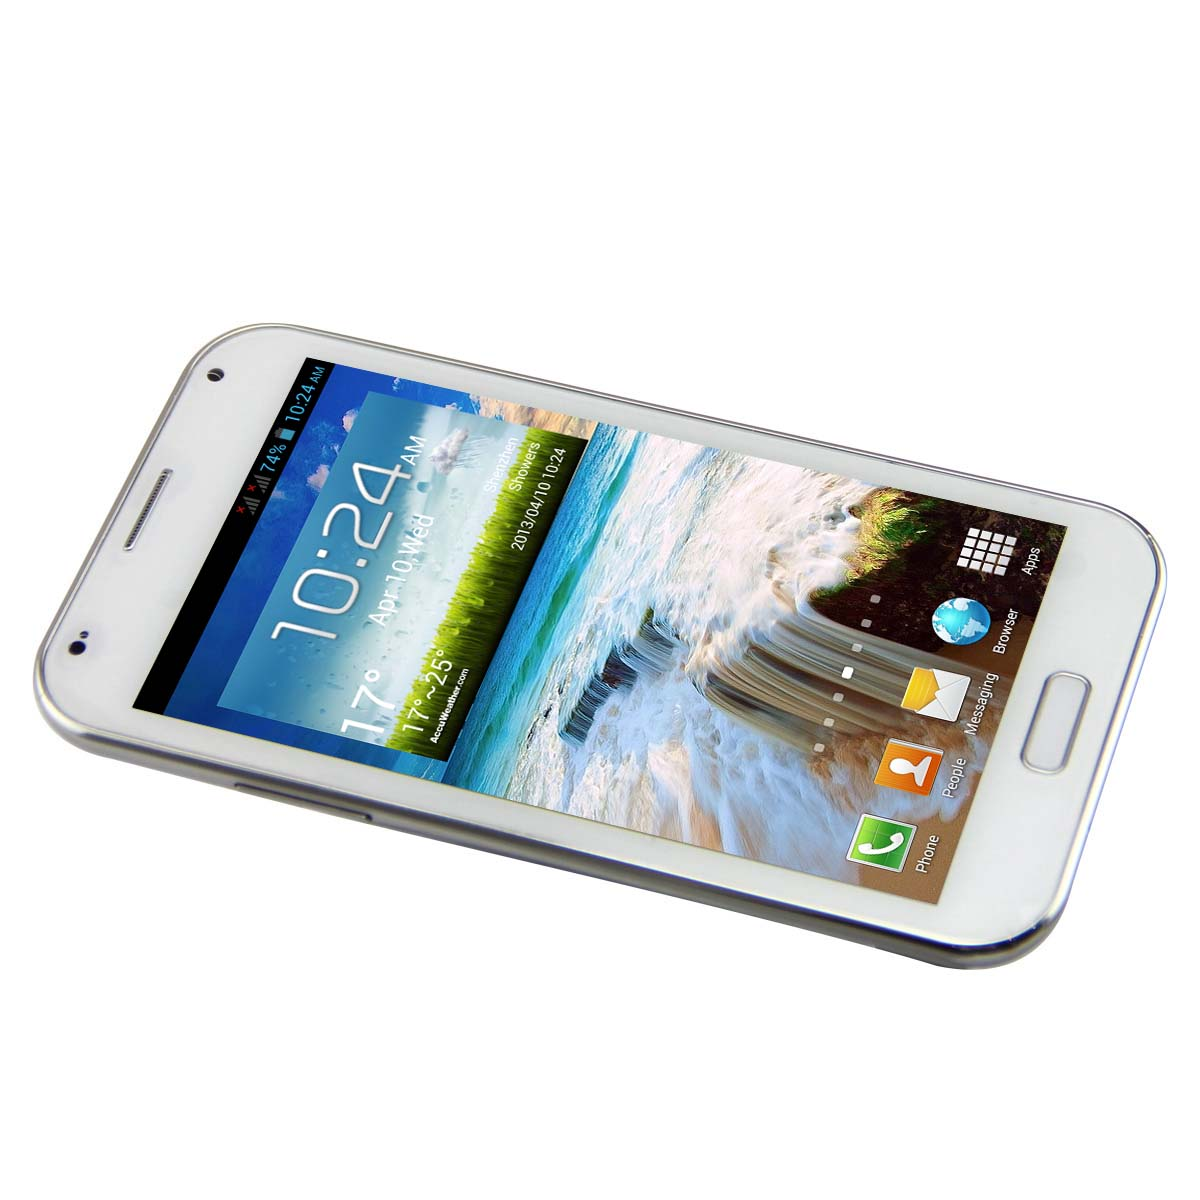 3G smartphone,Android